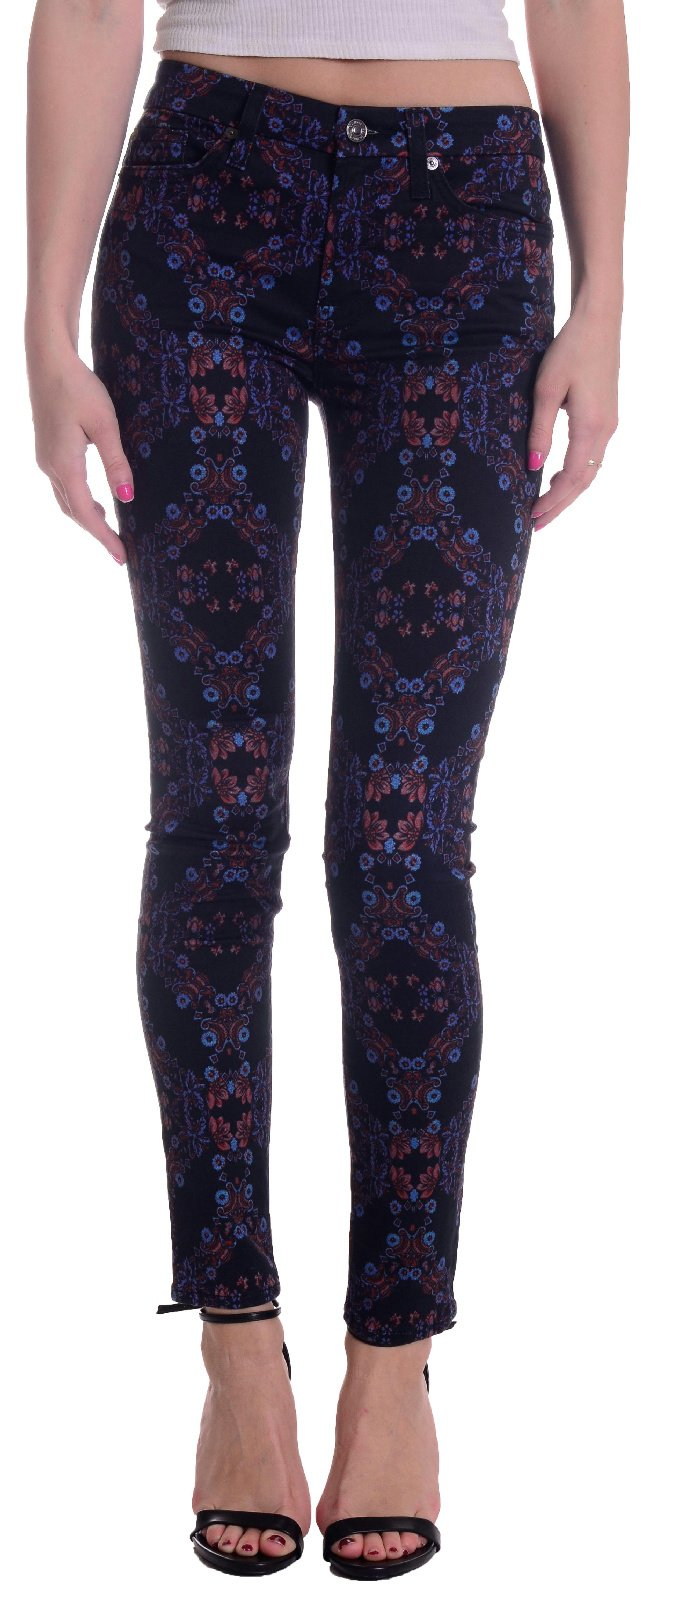 7 For All Mankind Women's The Mid Rise Skinny w/ Contour Waistband in Radiant Stained Glass Radiant Stained Glass 25 X 30.5